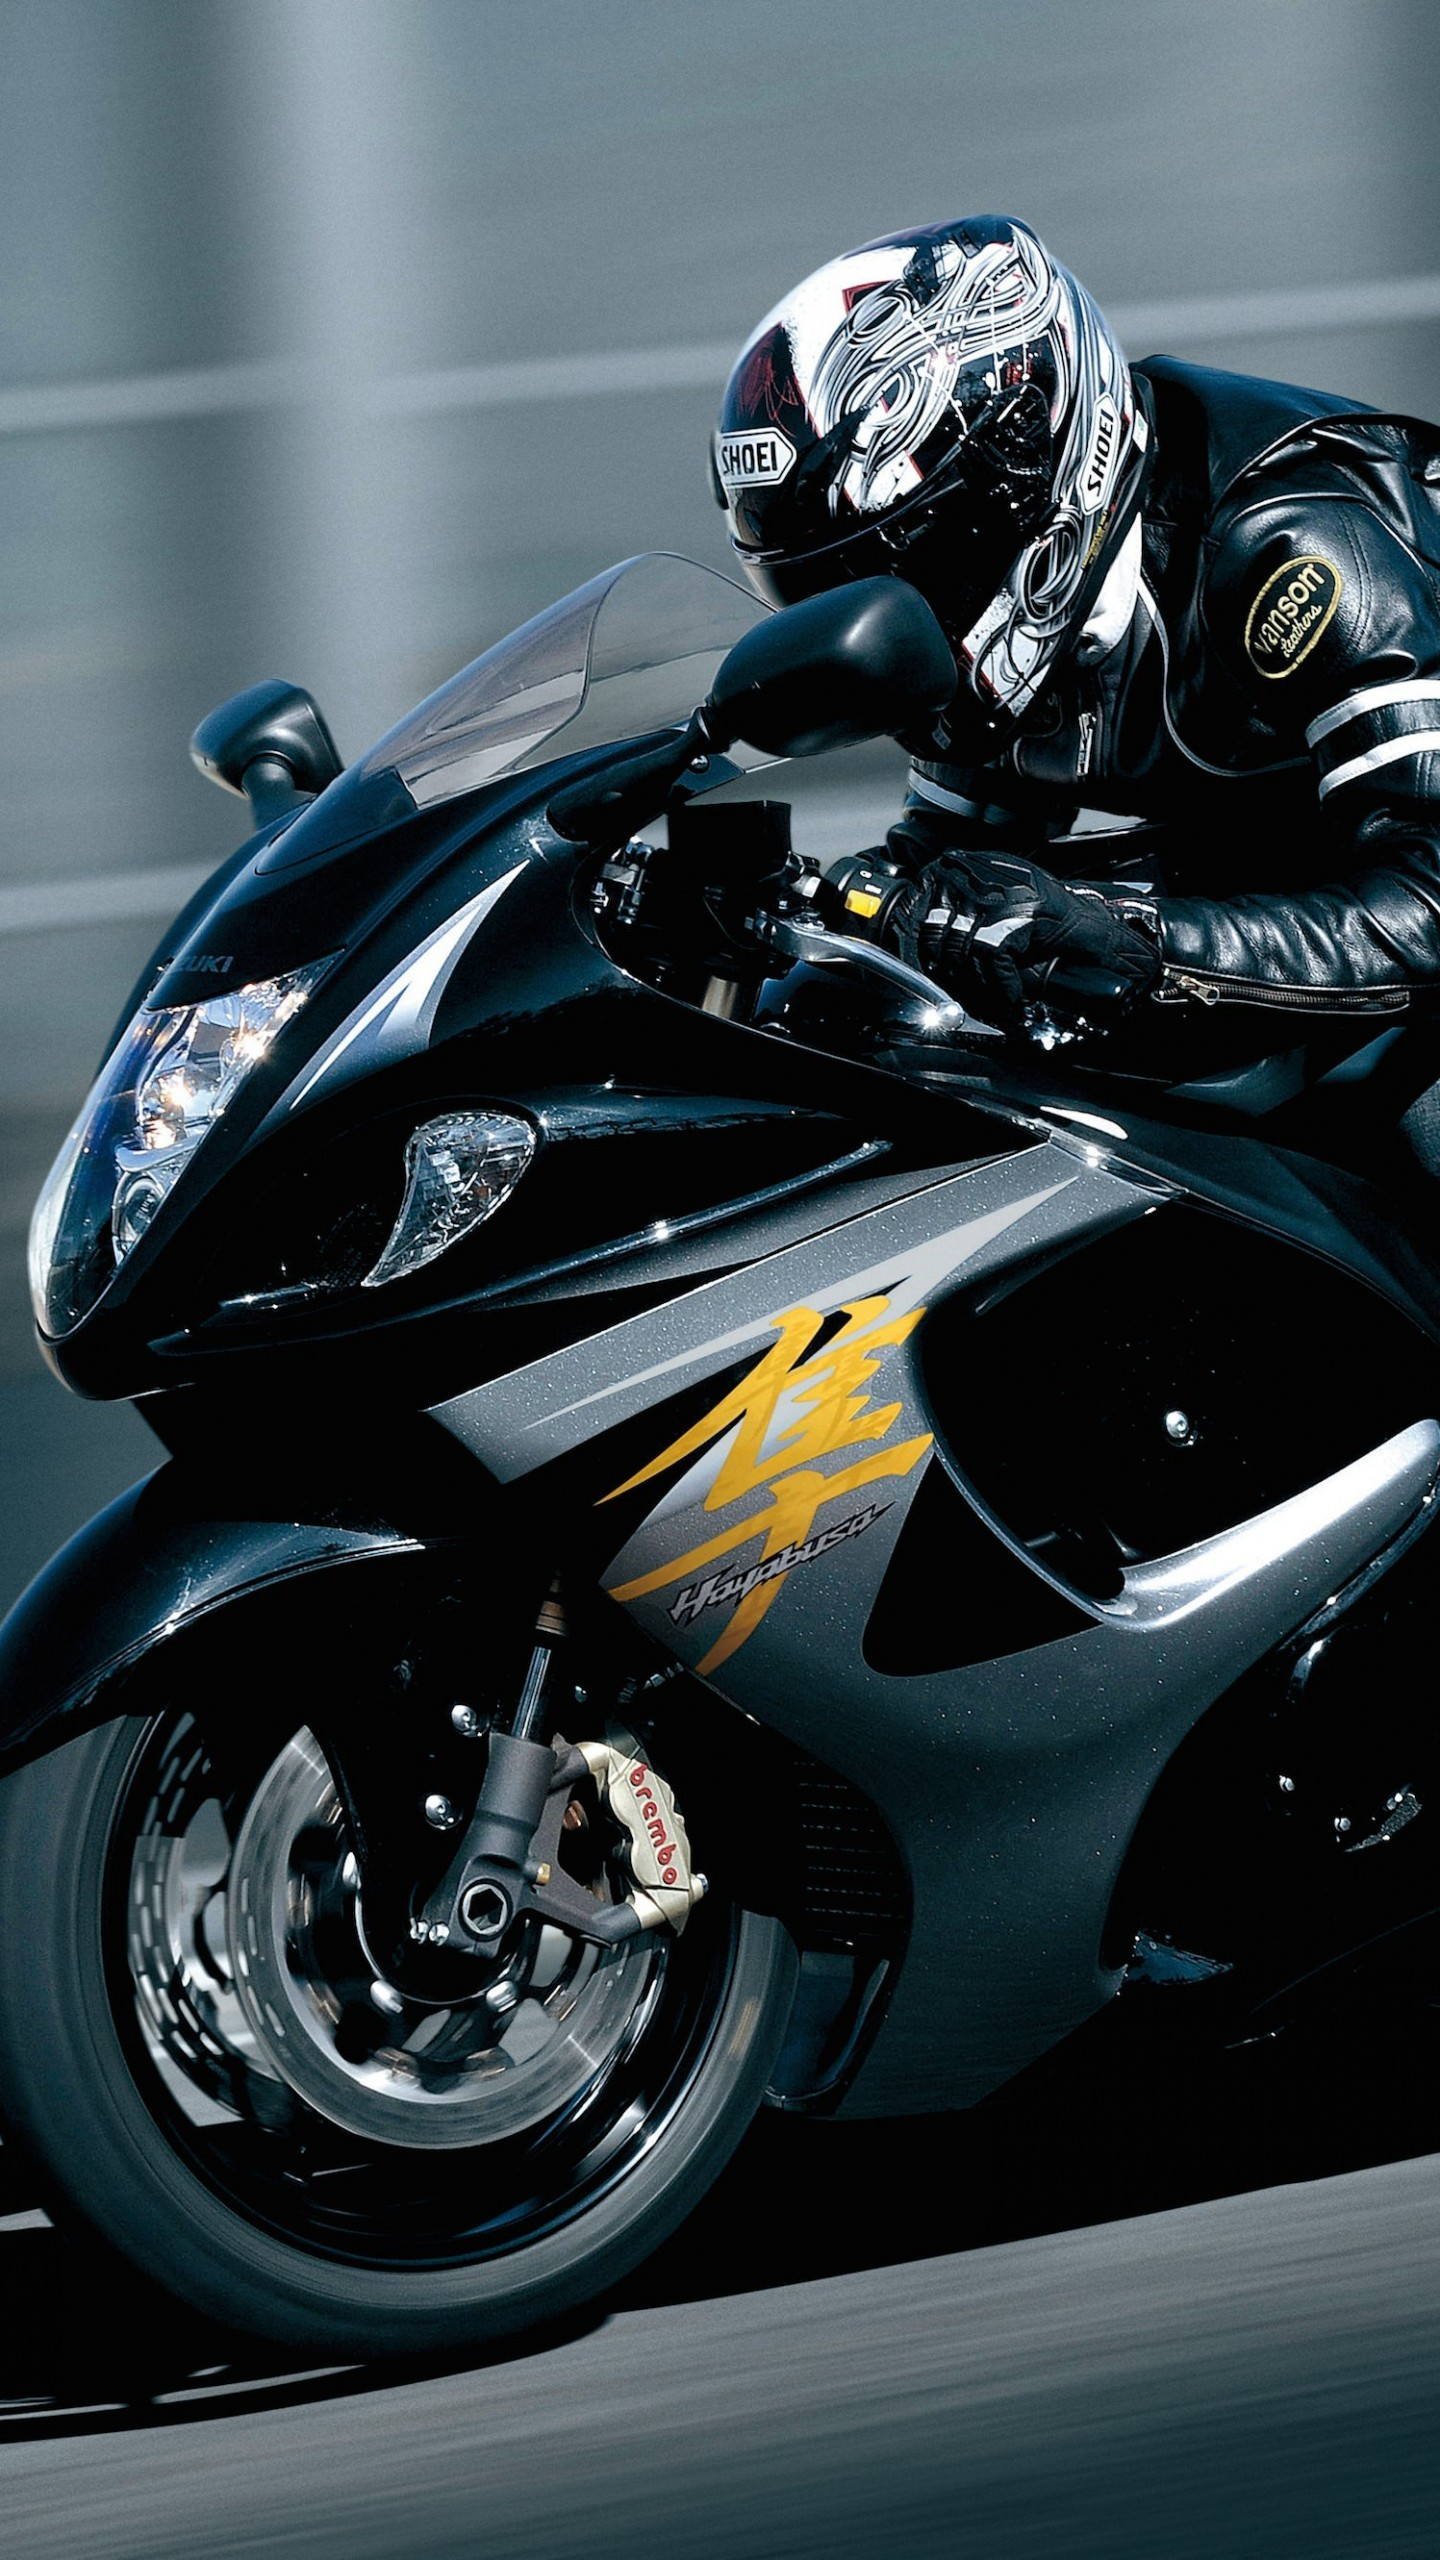 Suzuki Hayabusa GSX 1300R Wallpaper for SAMSUNG Galaxy Note 4